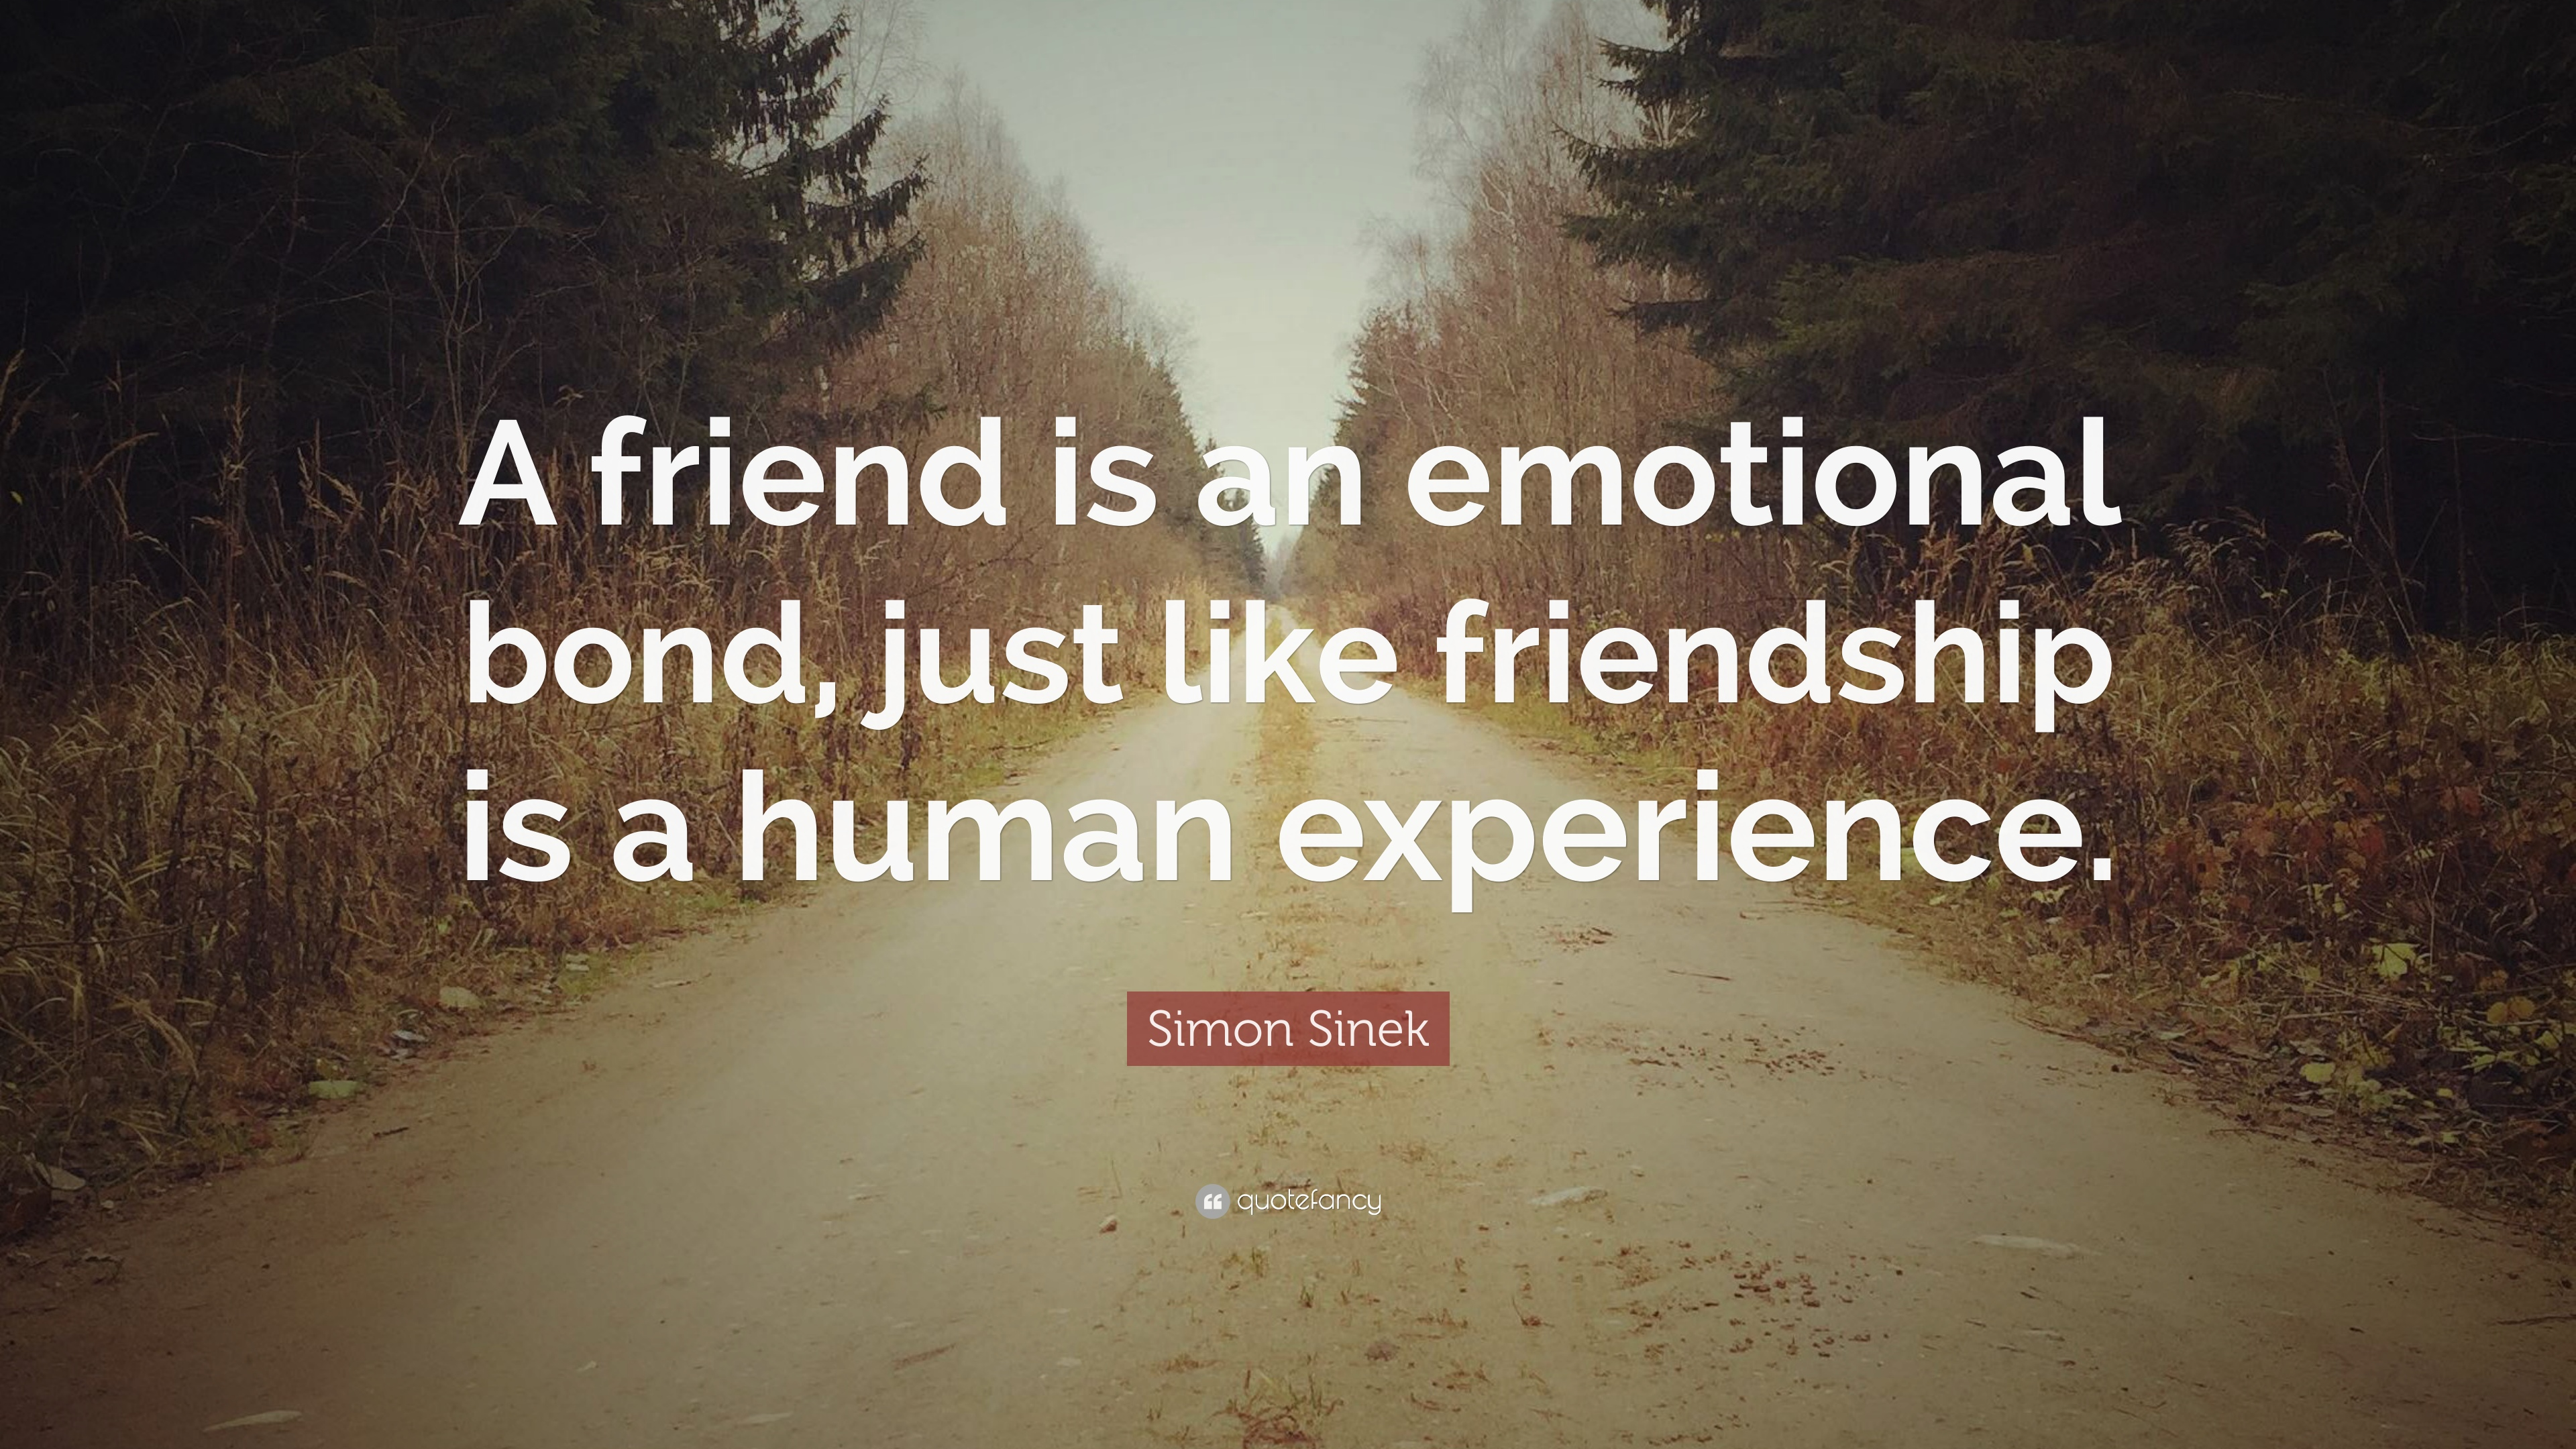 Image of: Messages Simon Sinek Quote a Friend Is An Emotional Bond Just Like Friendship Is Quotefancy Simon Sinek Quote a Friend Is An Emotional Bond Just Like